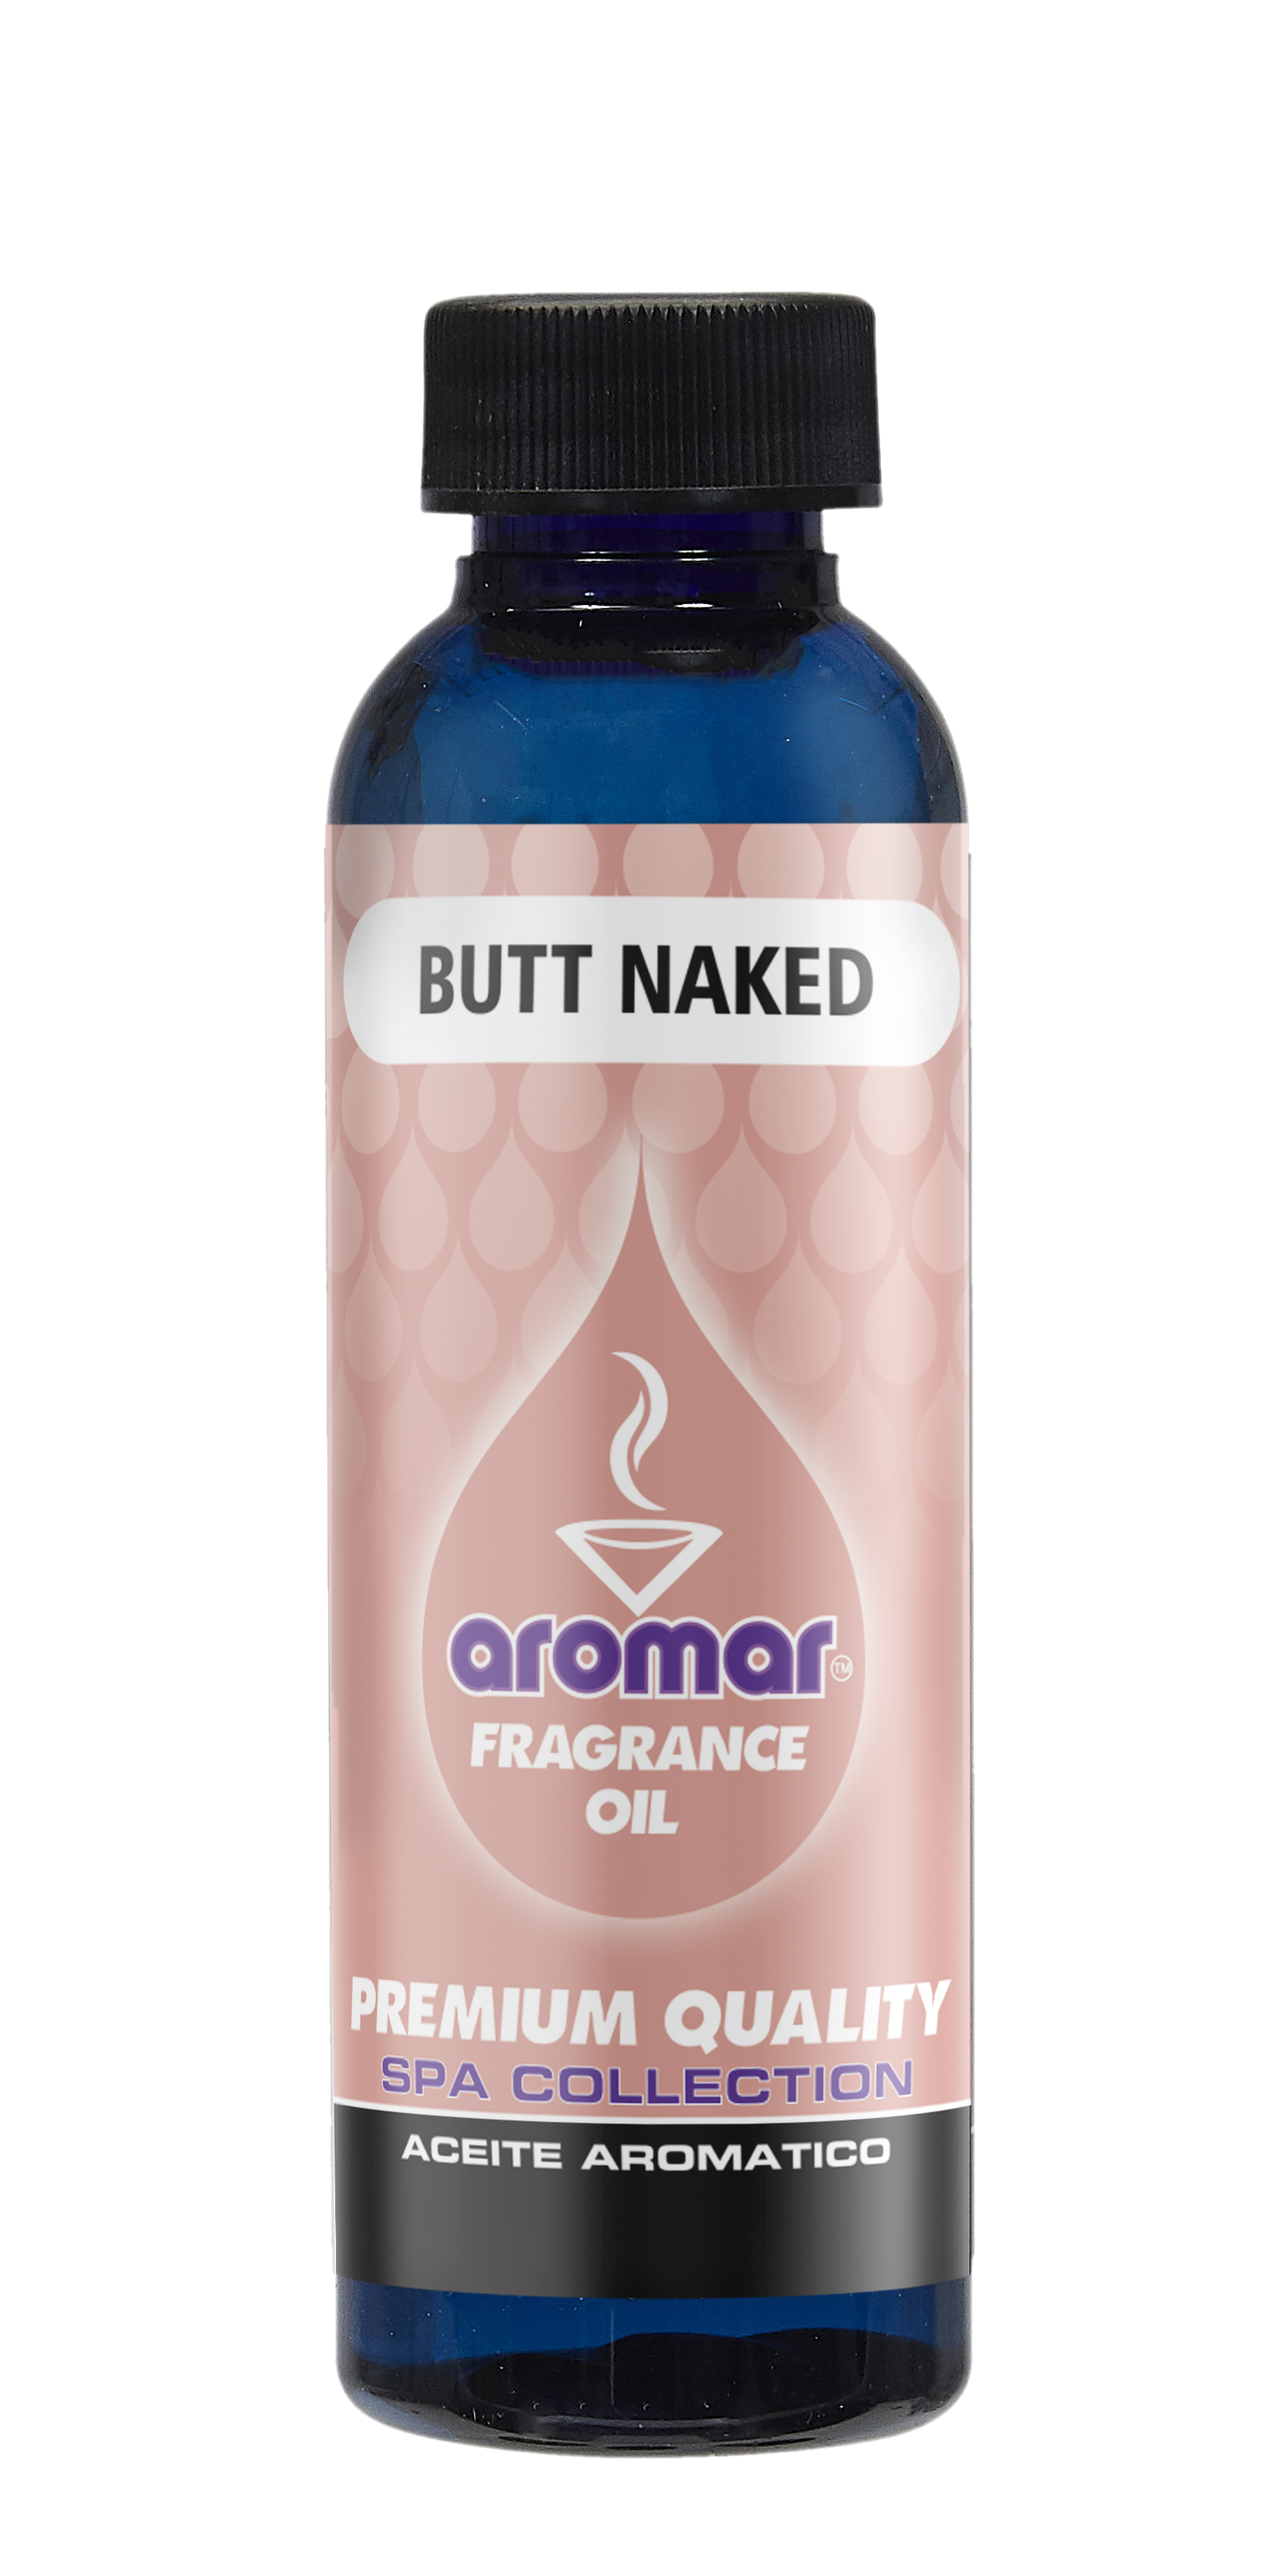 Butt Naked Aromatic Oil